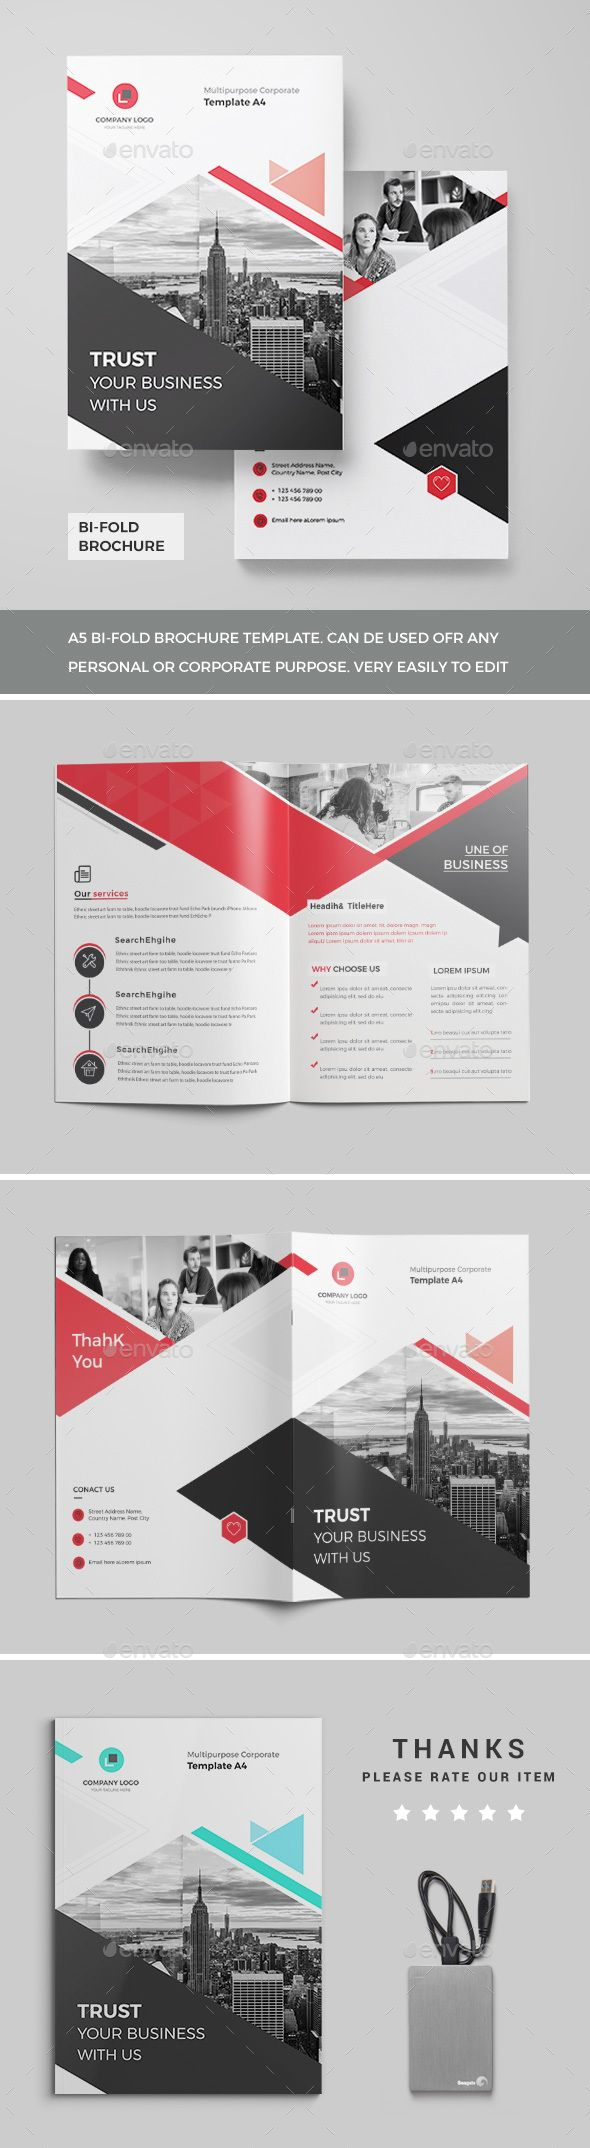 corporate bi fold brochure corporate brochure pinterest